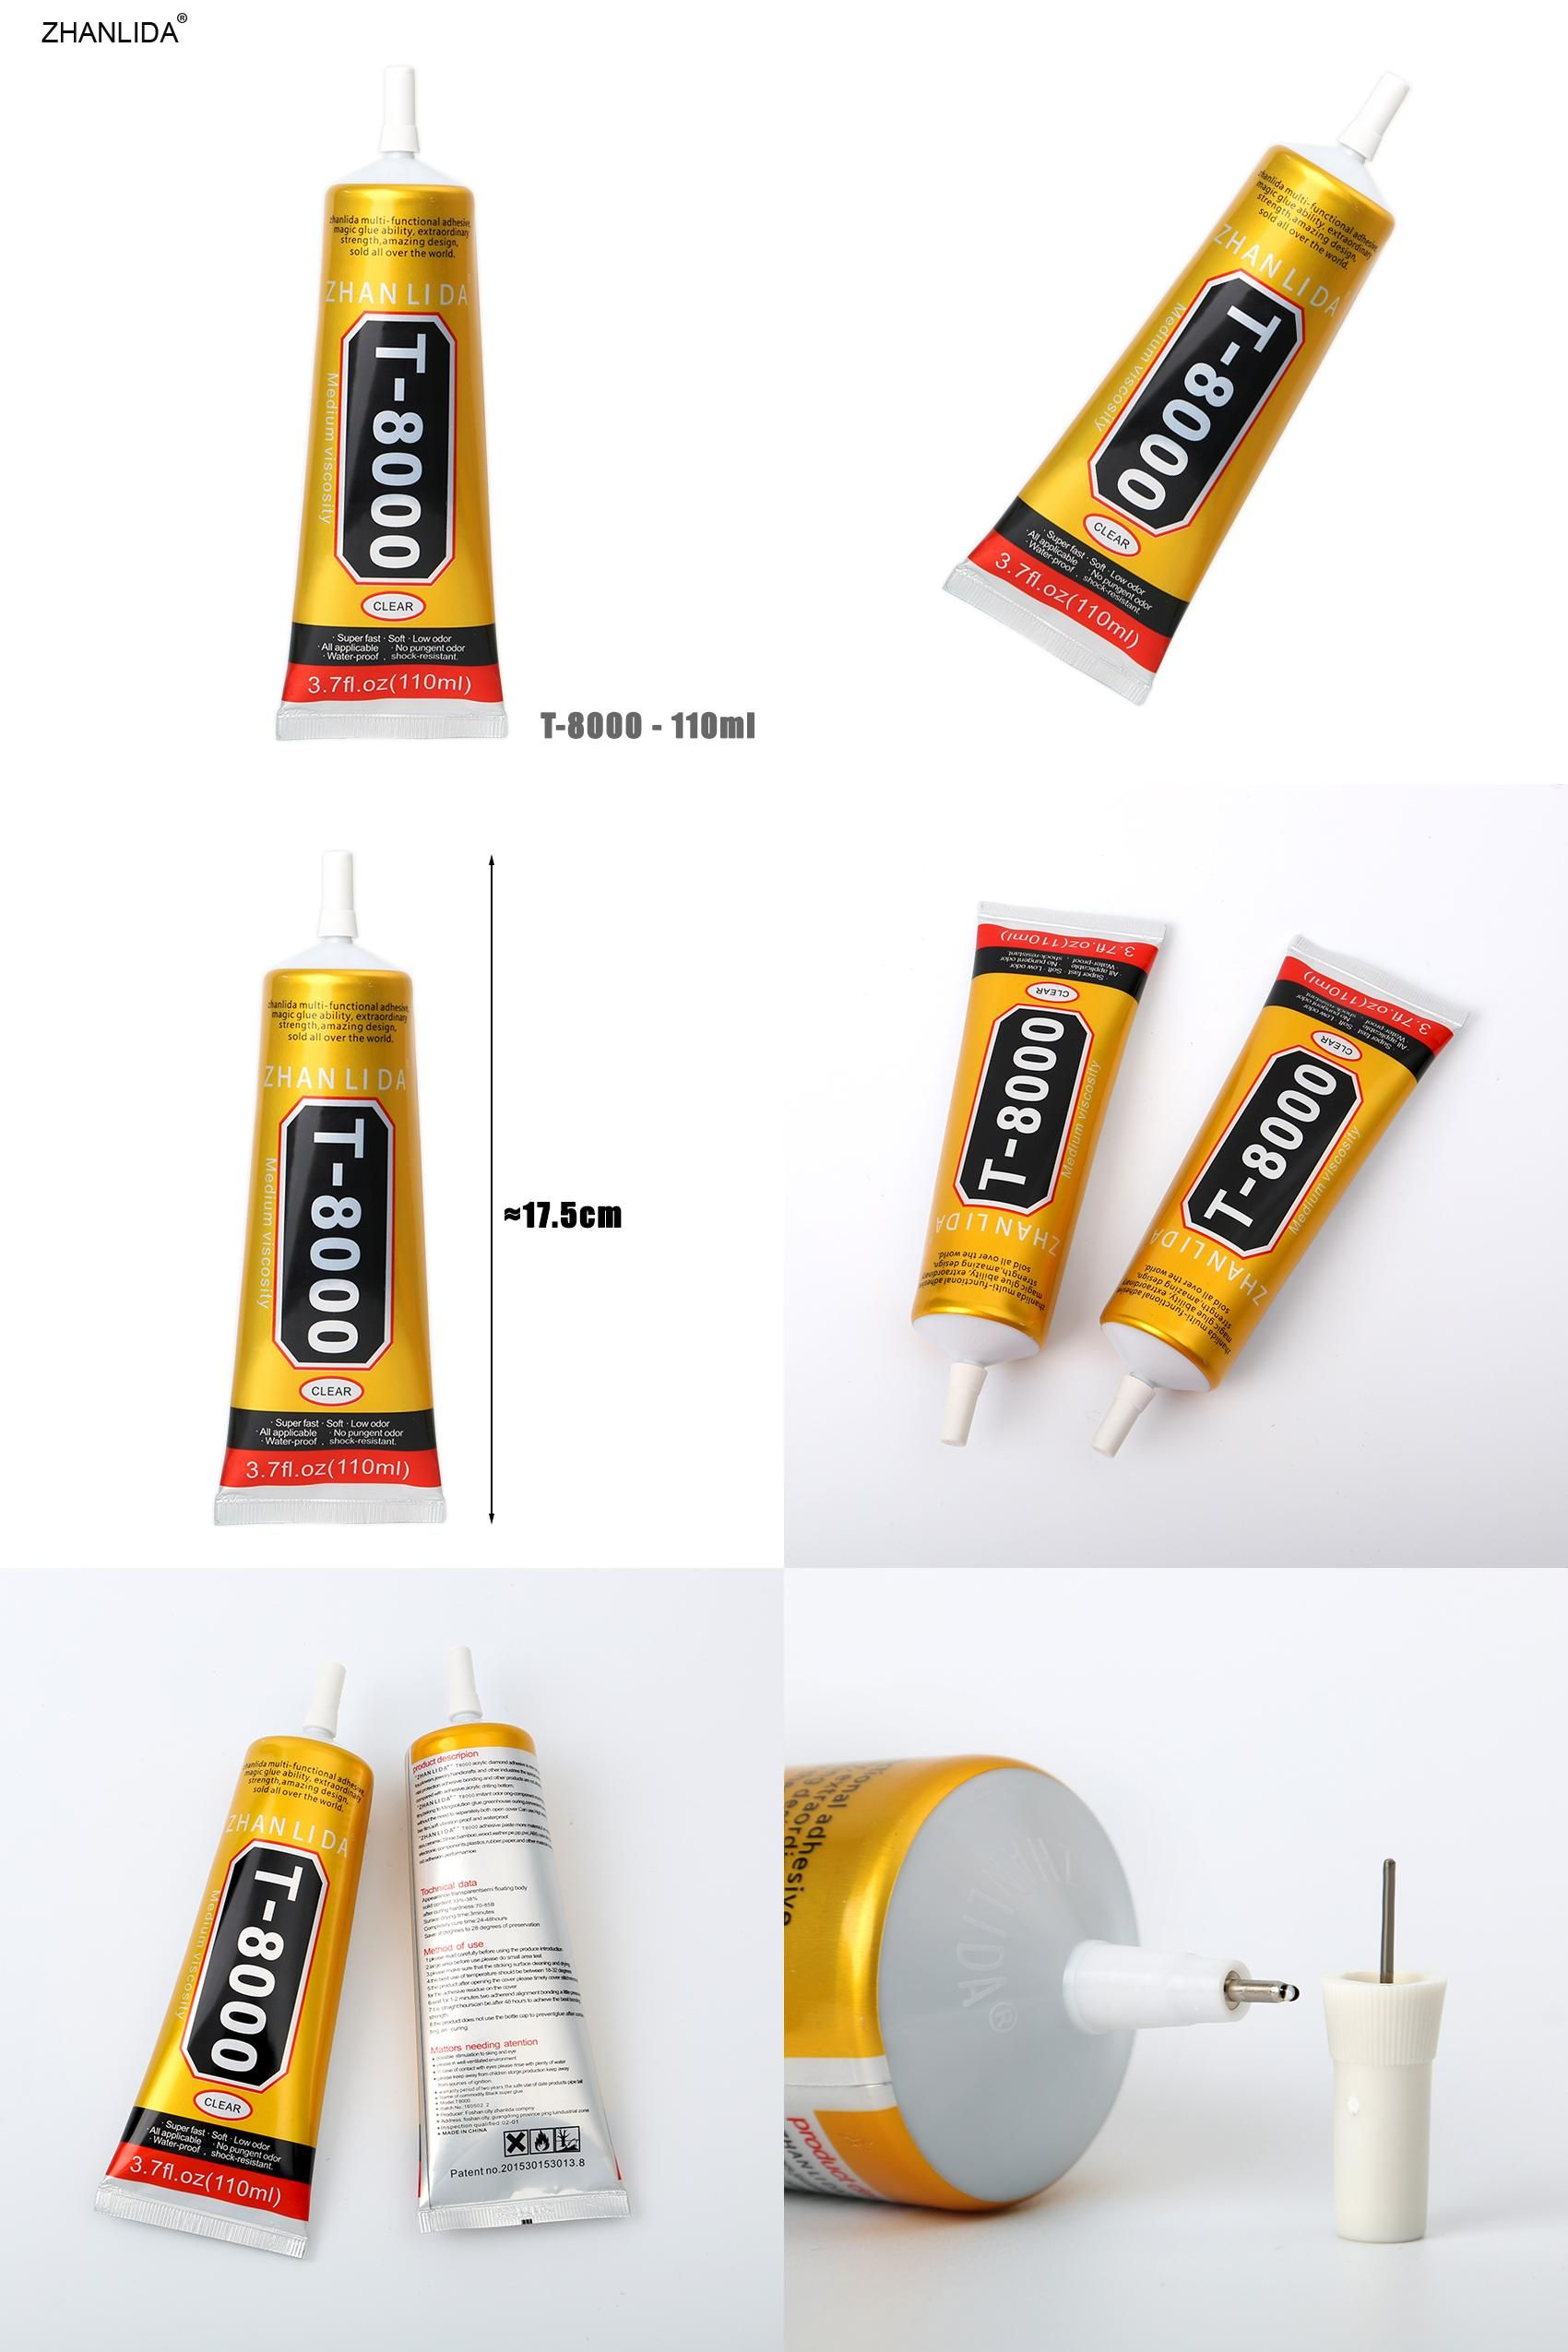 Visit to Buy  ZHANLIDA T-8000 110ml Clear Glue Epoxy Resin for Glass ... 7dfed7bb5658